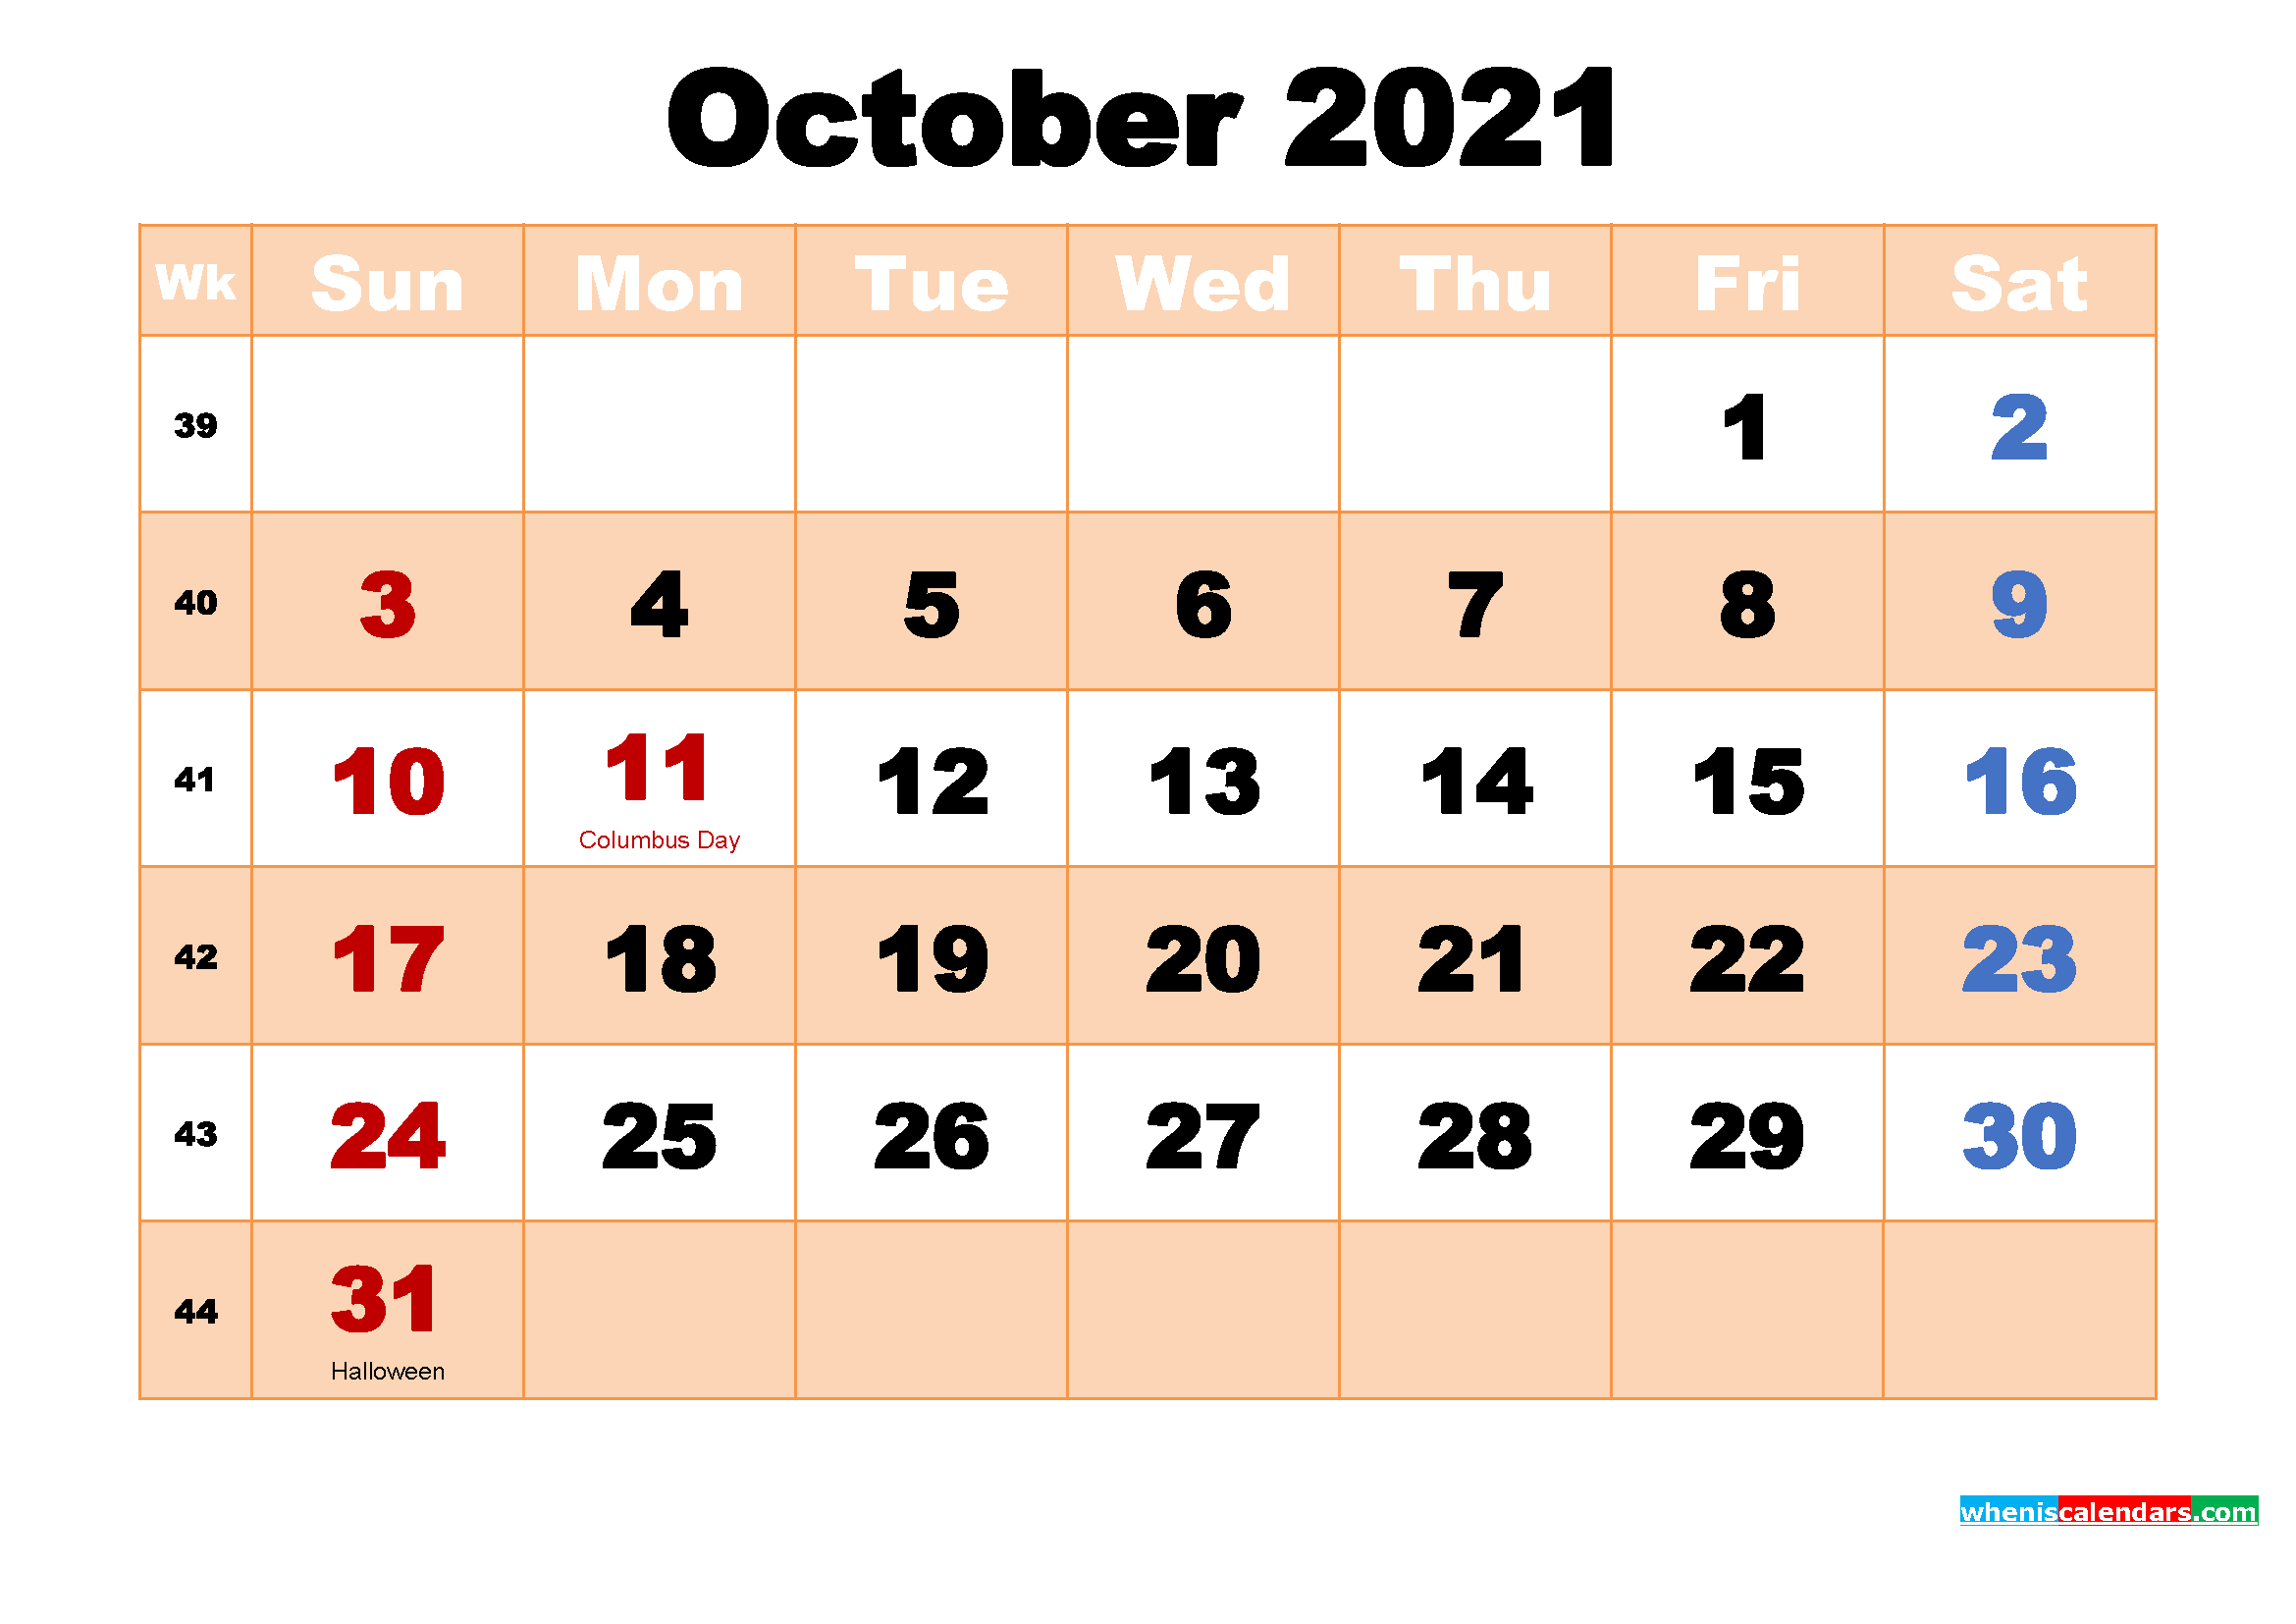 October 2021 Calendar with Holidays Wallpaper